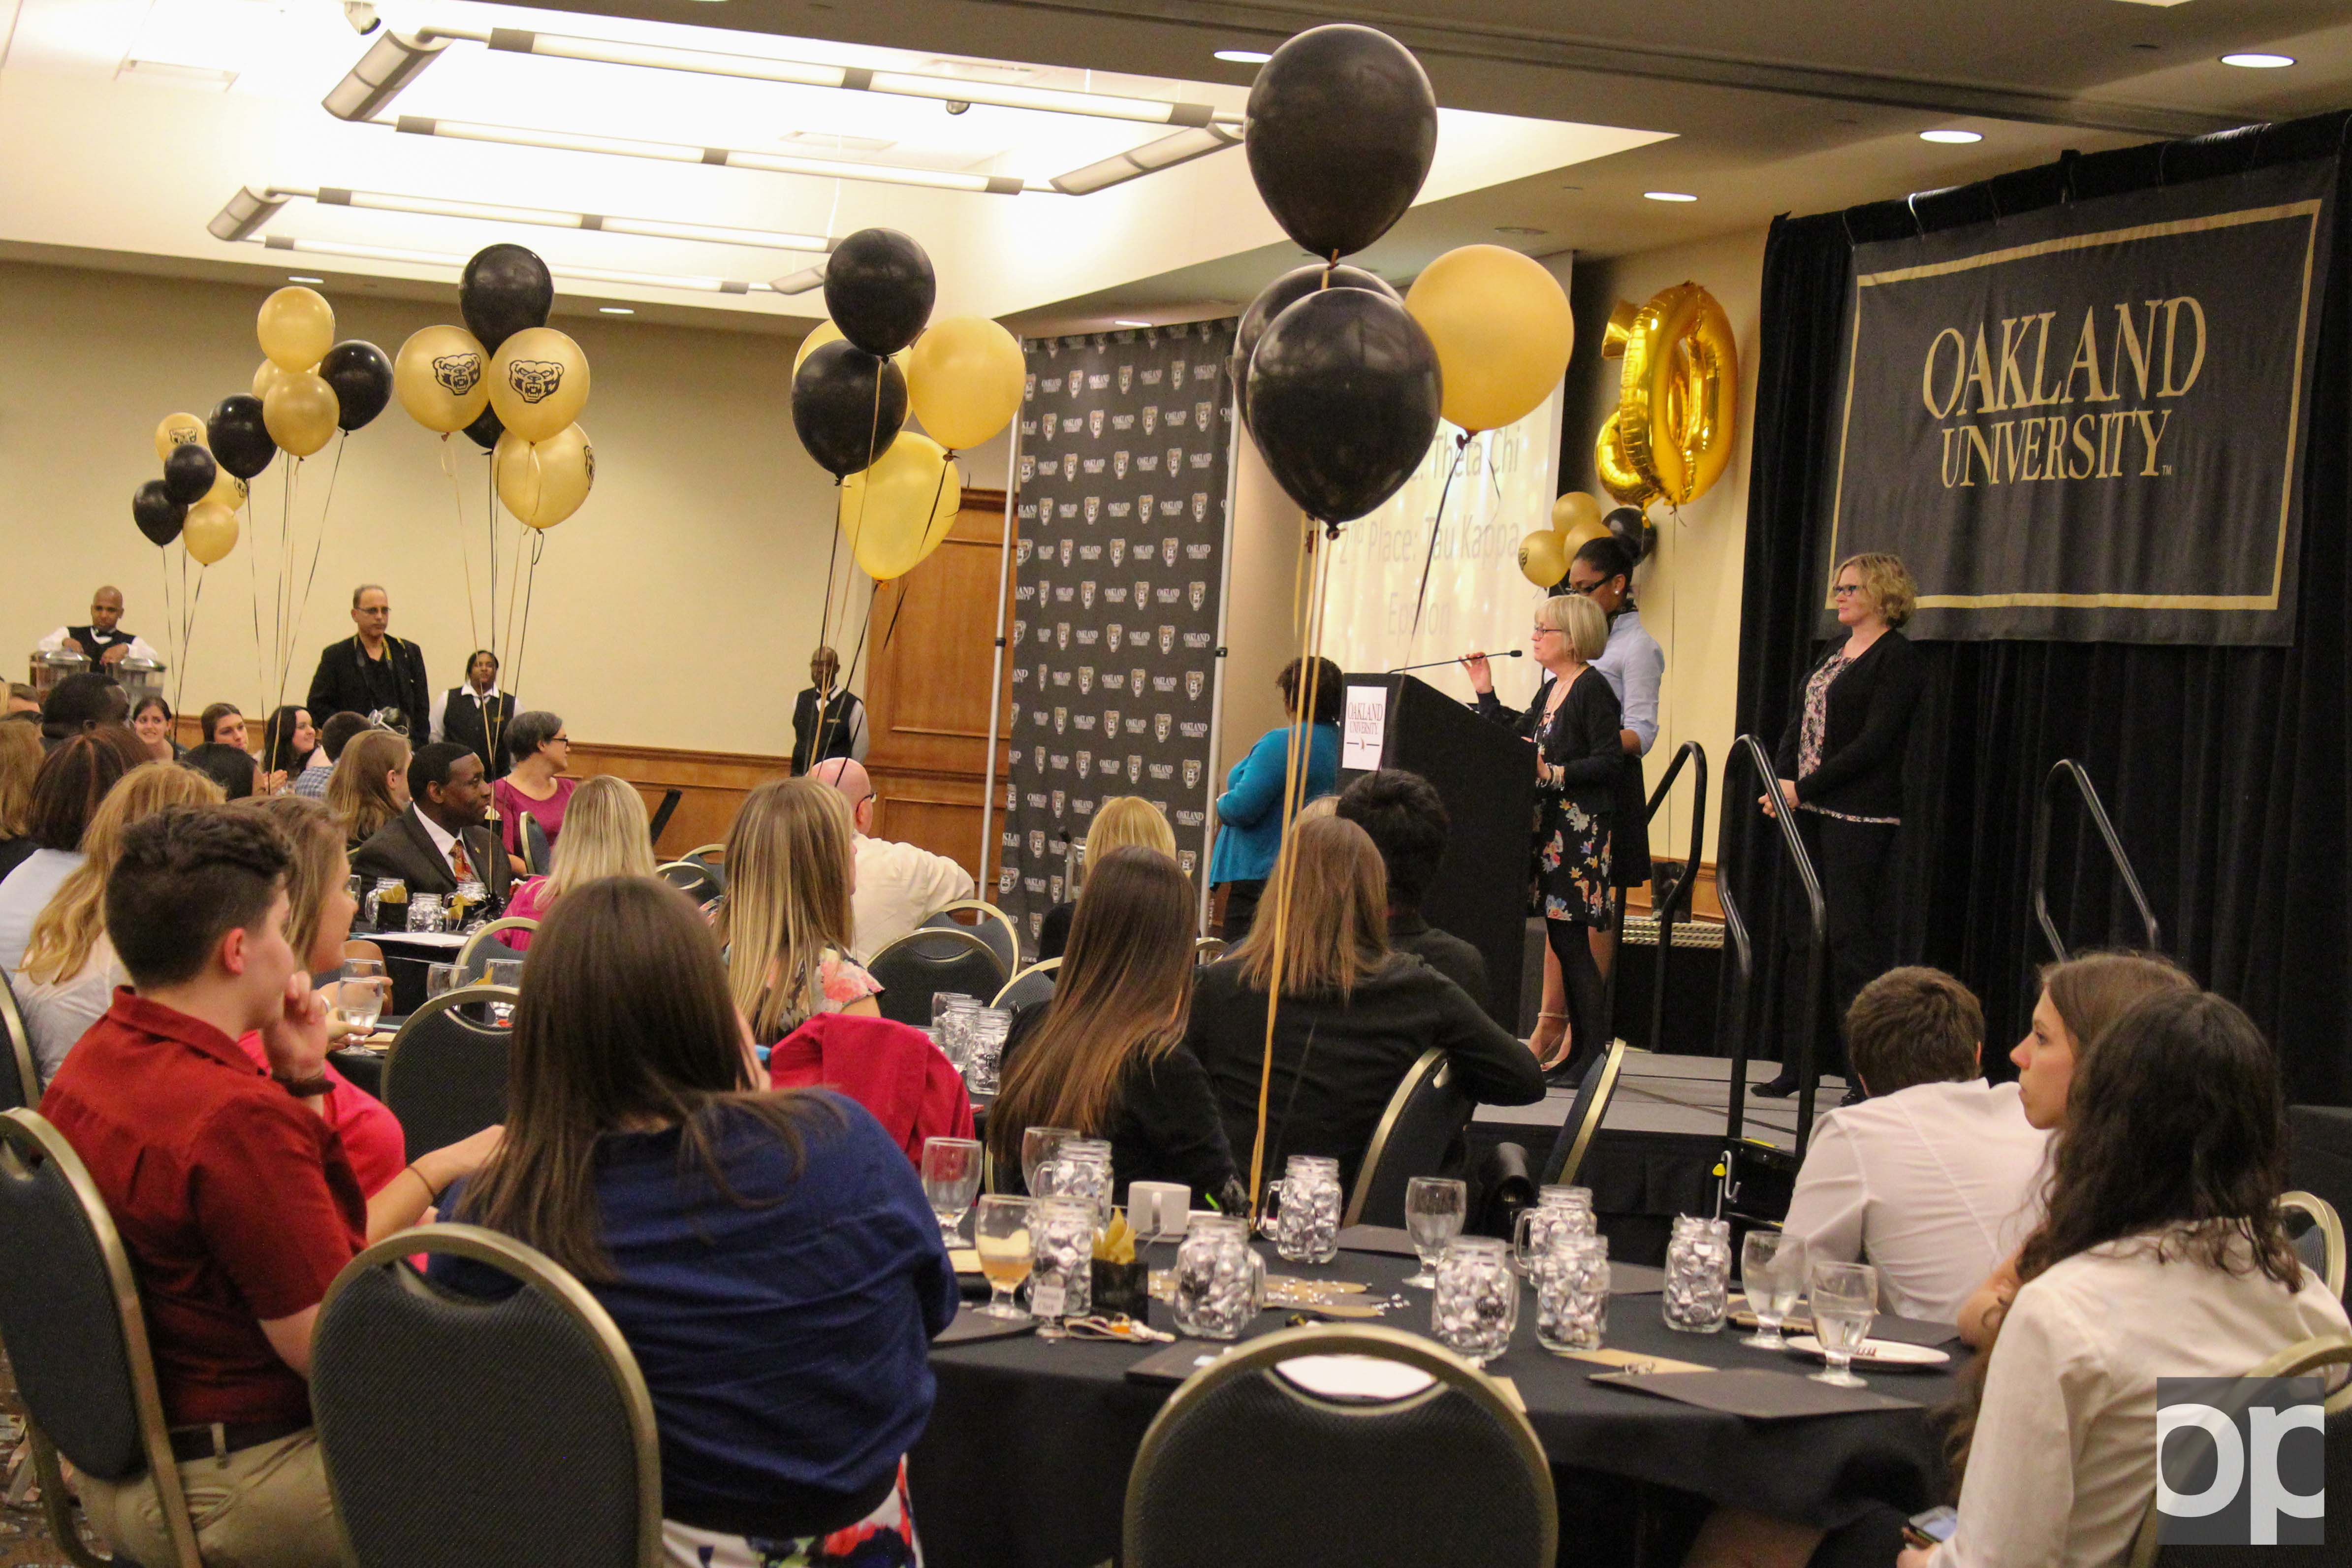 The annual Student Activities and Leadership Award Banquet was celebrated with the theme